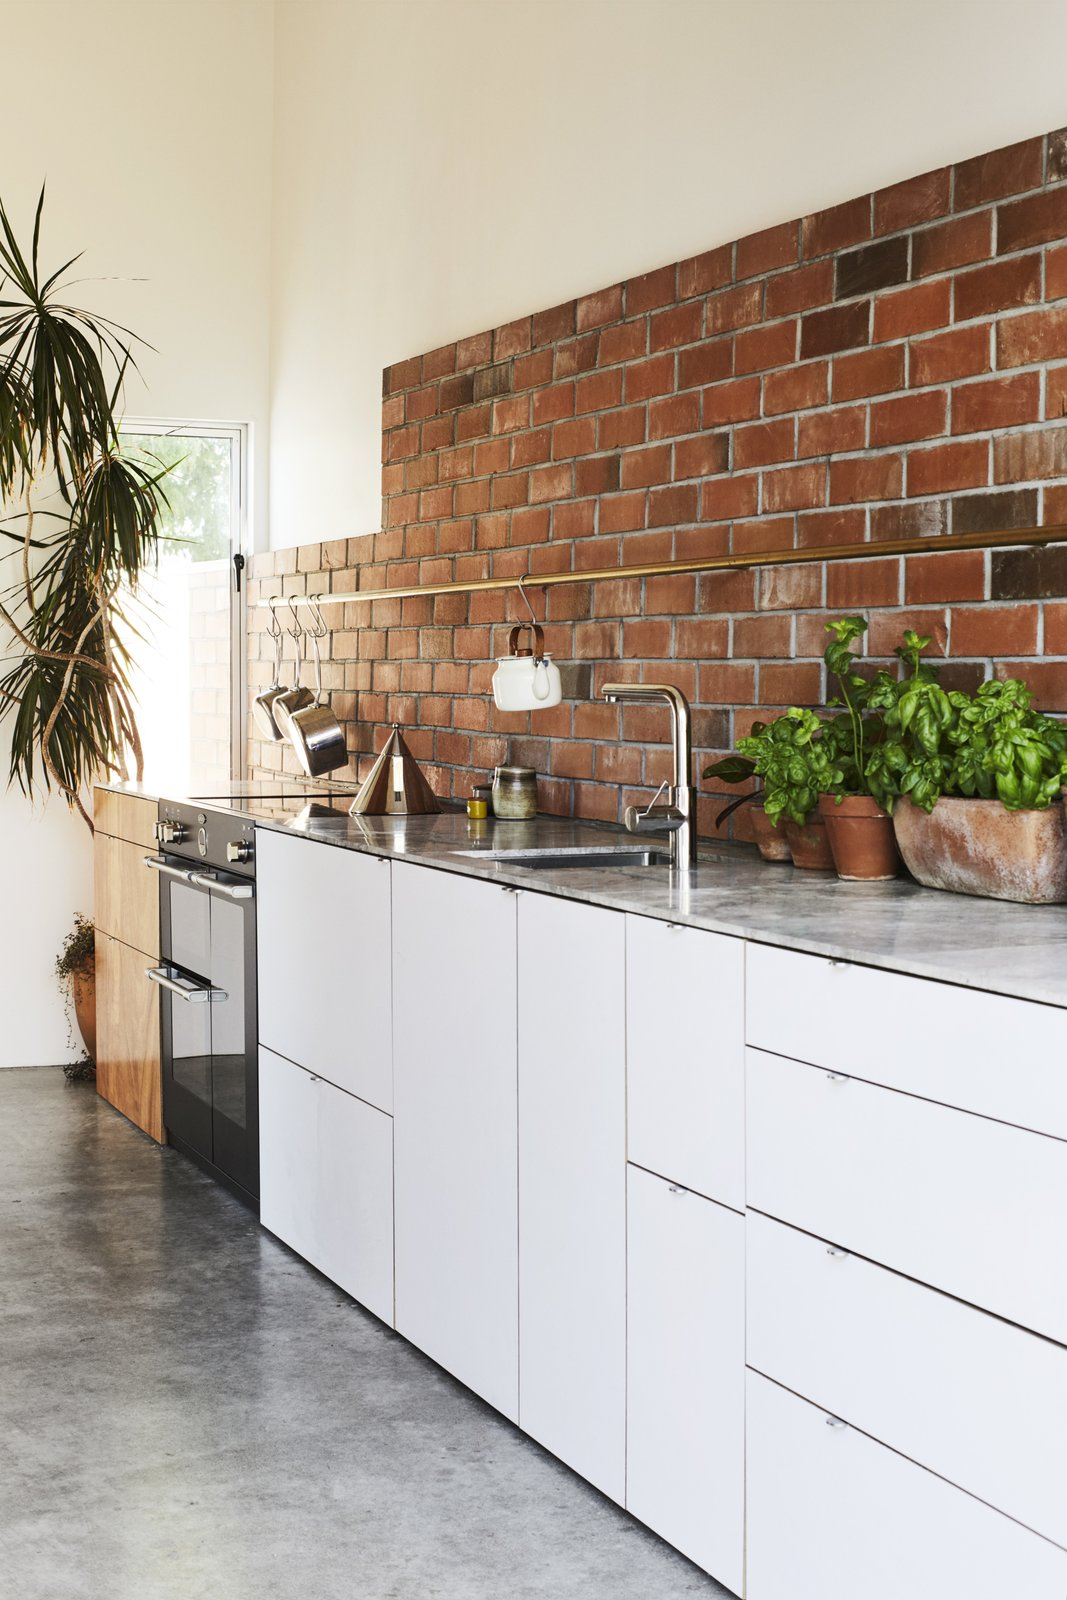 Kitchen, White, Brick, Wall Oven, Concrete, Undermount, and Marble  Kitchen Undermount Wall Oven Marble Brick Photos from This DIY Home in New Zealand Doubles as a Coffee Spot and Art Gallery